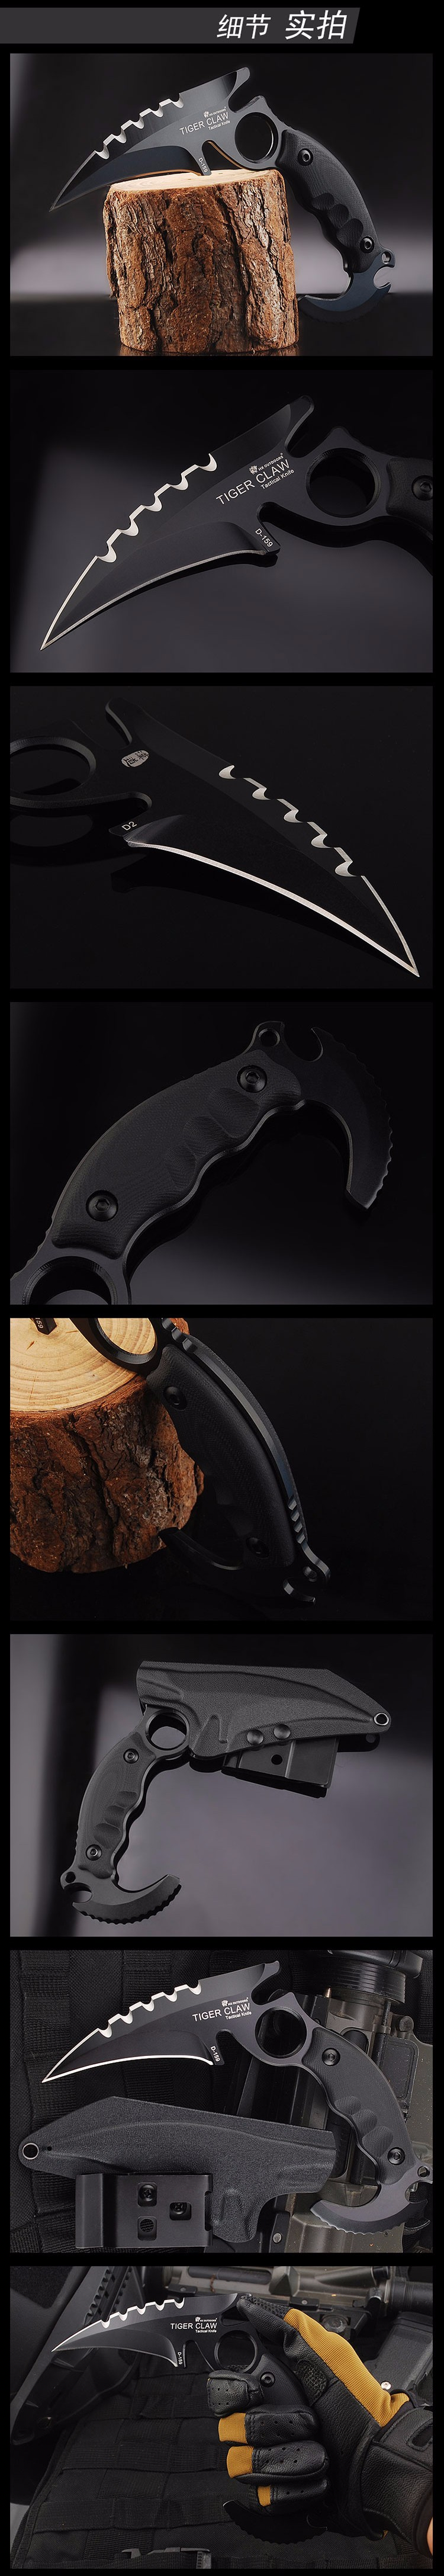 Buy HX Outdoors Tactical Karambit Knife Cs go Camping Survival Hunting Claw Knives EDC Multi Purpose Tools D2 Blade Huntsman defense cheap